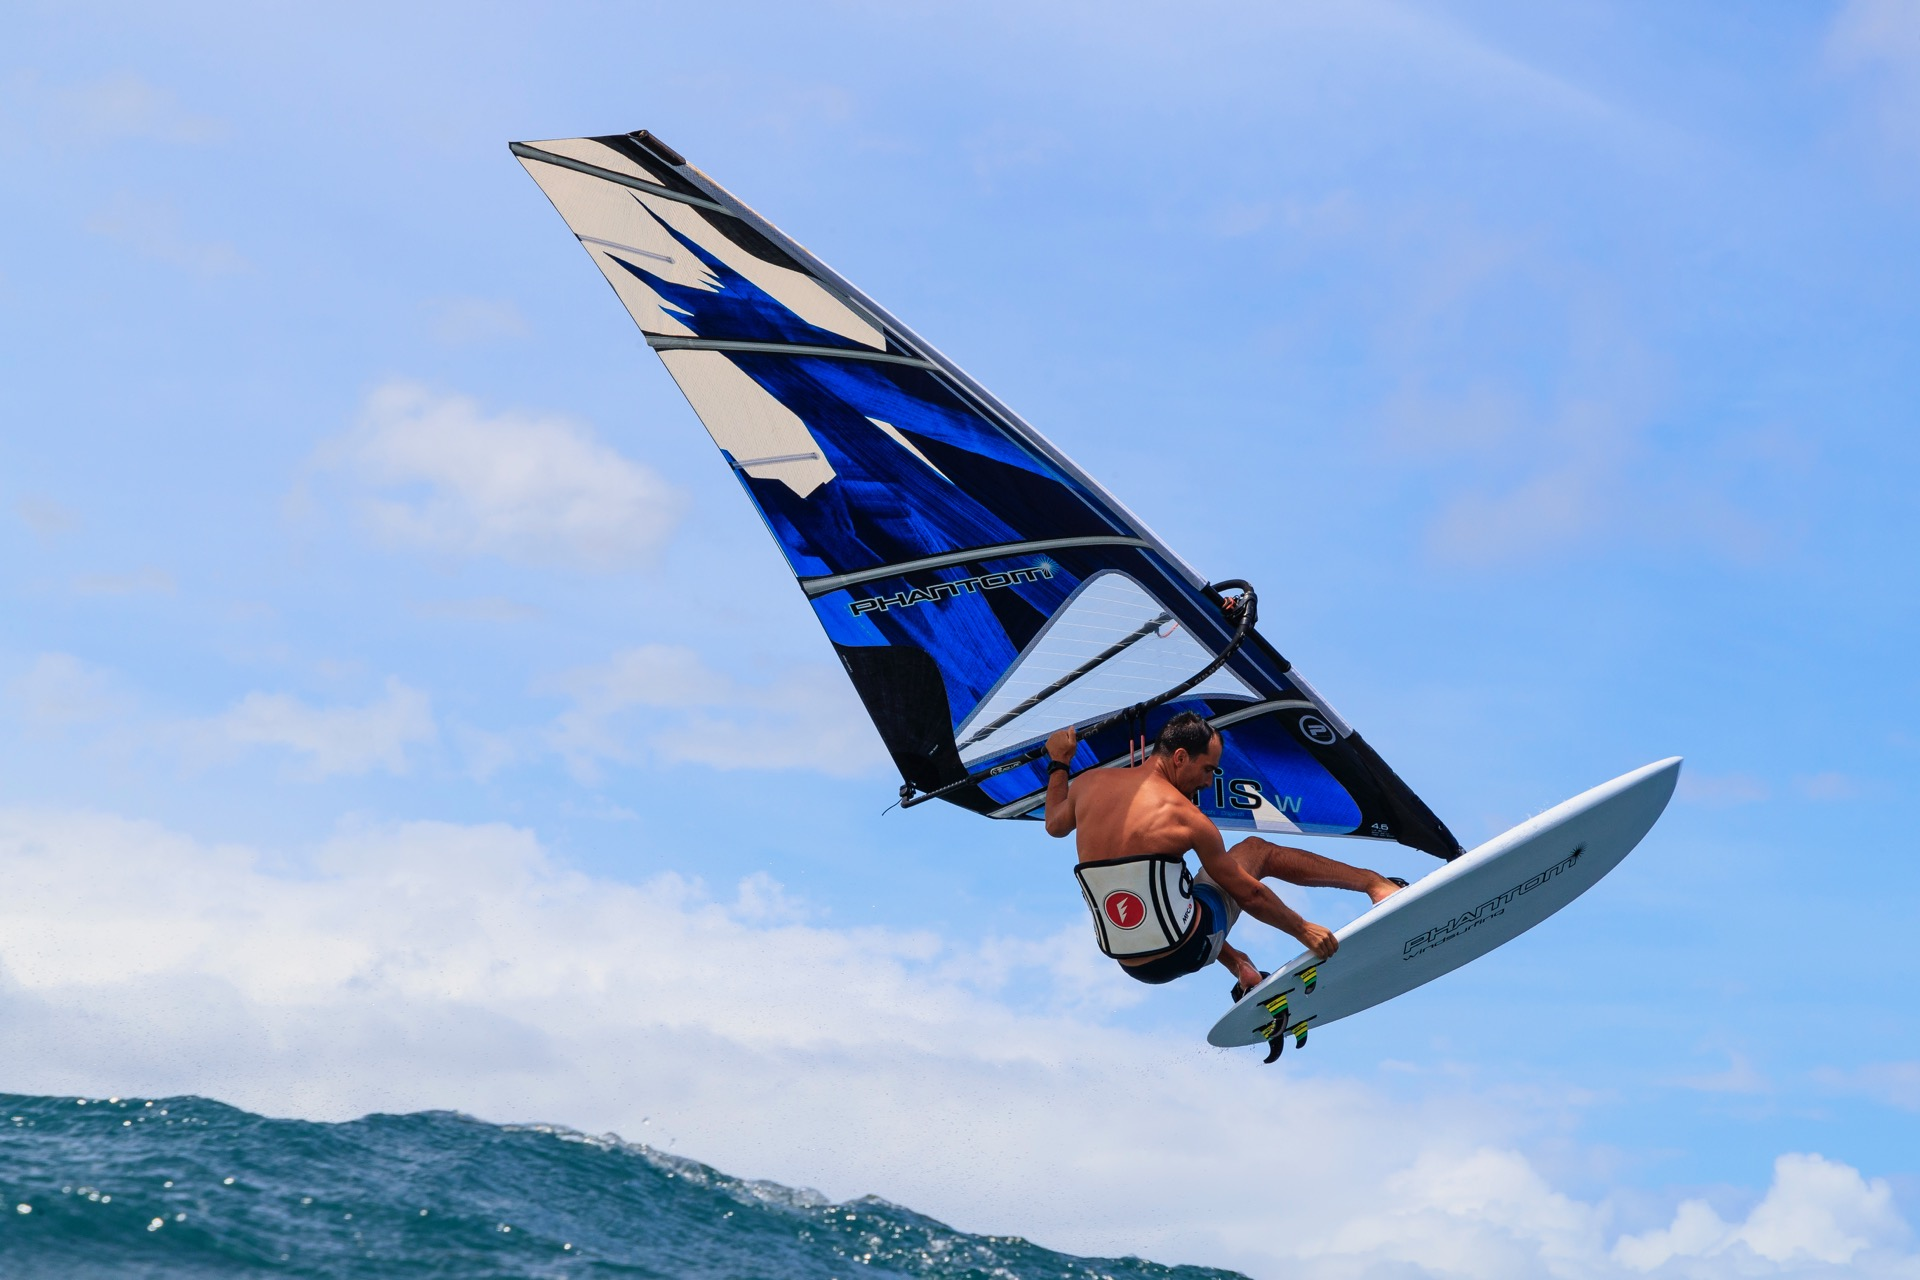 January 2018 - Launch of PHANTOM WINDSURFING sails